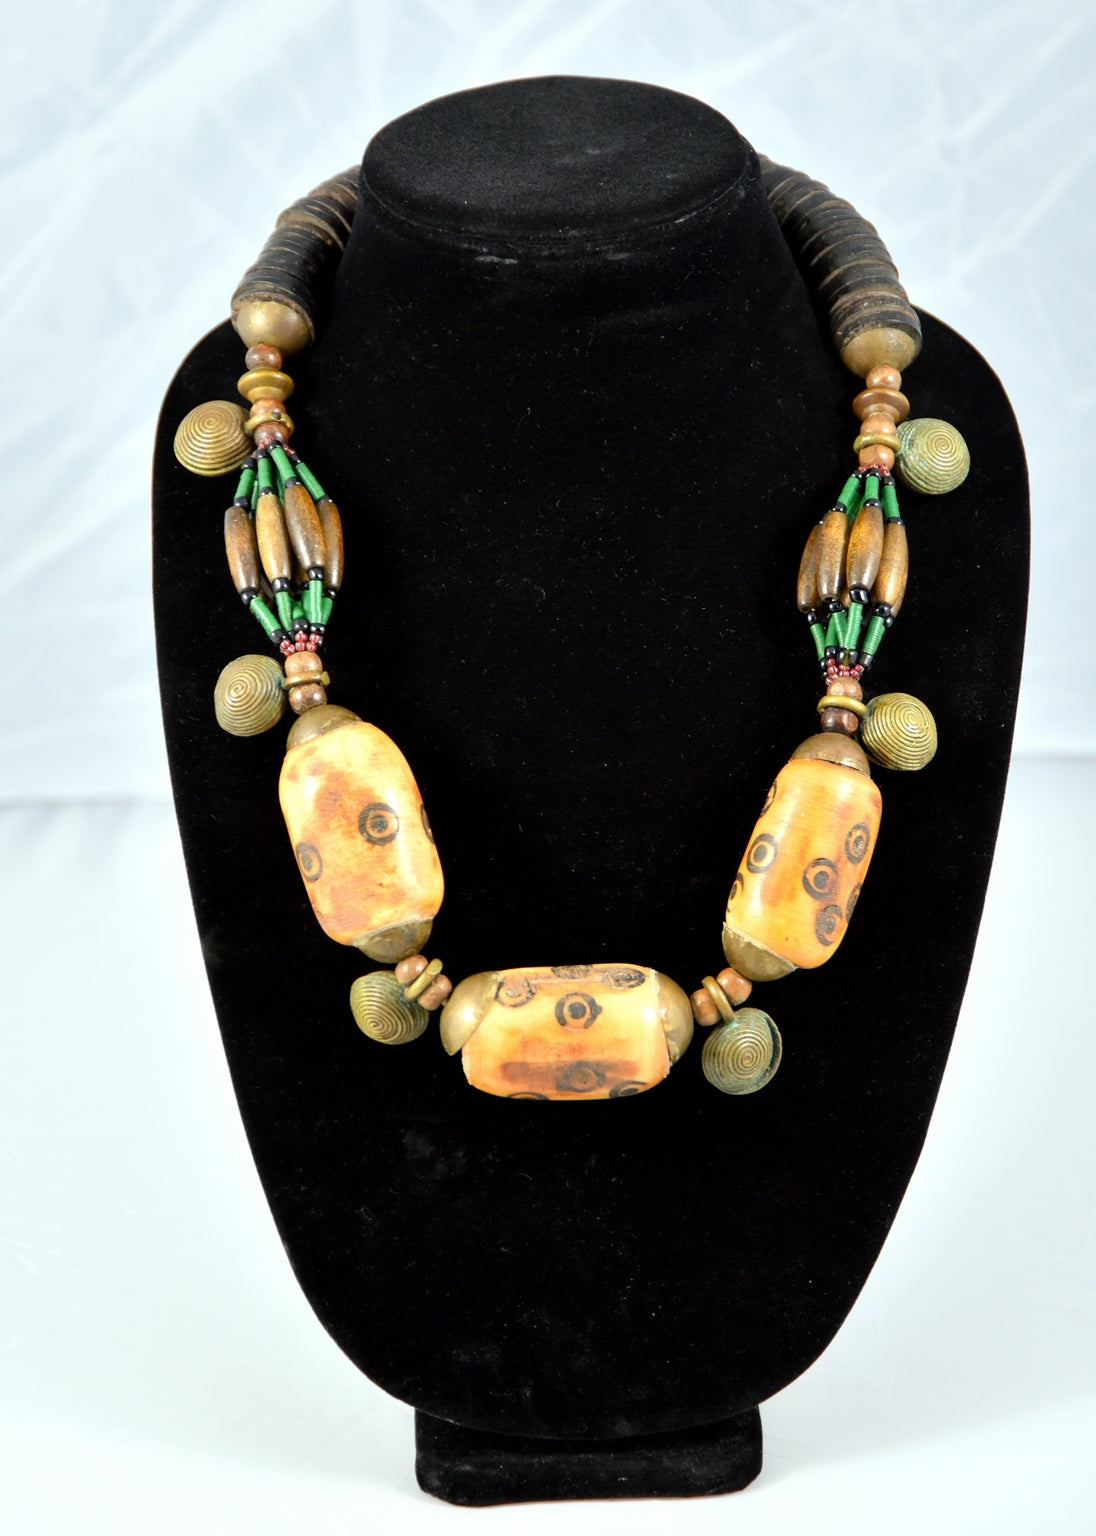 Carved Cow Bone Bead and Antique Brass Necklace - Inspired Luxe